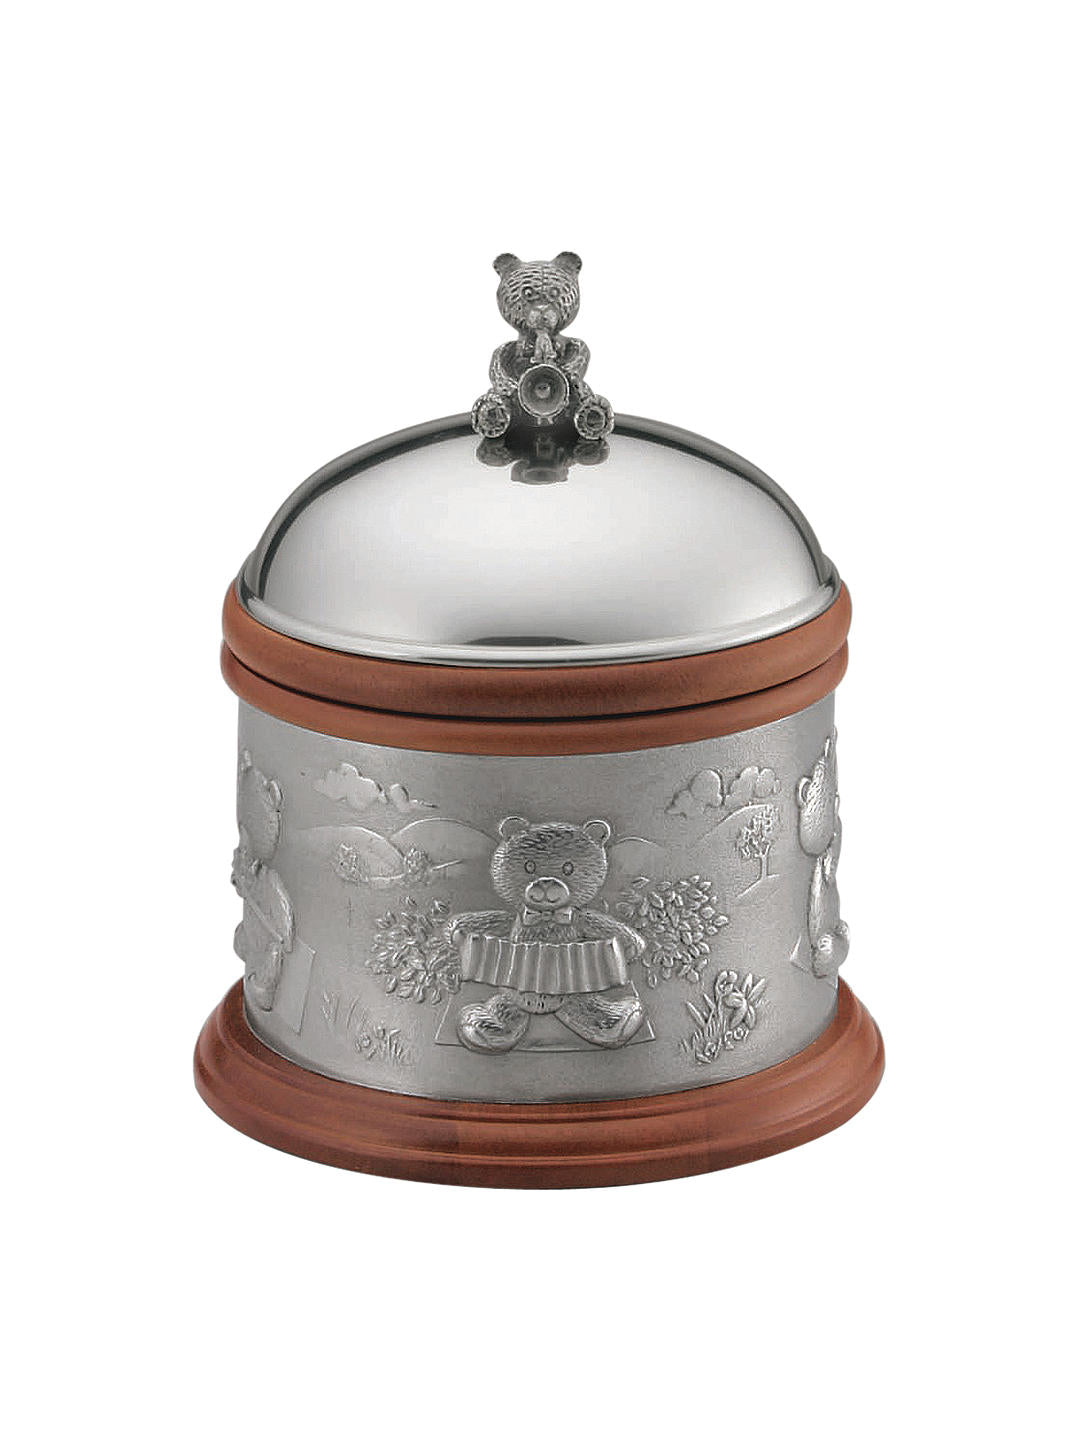 Pewter Teddy Bears' Picnic Music Box by Royal Selangor